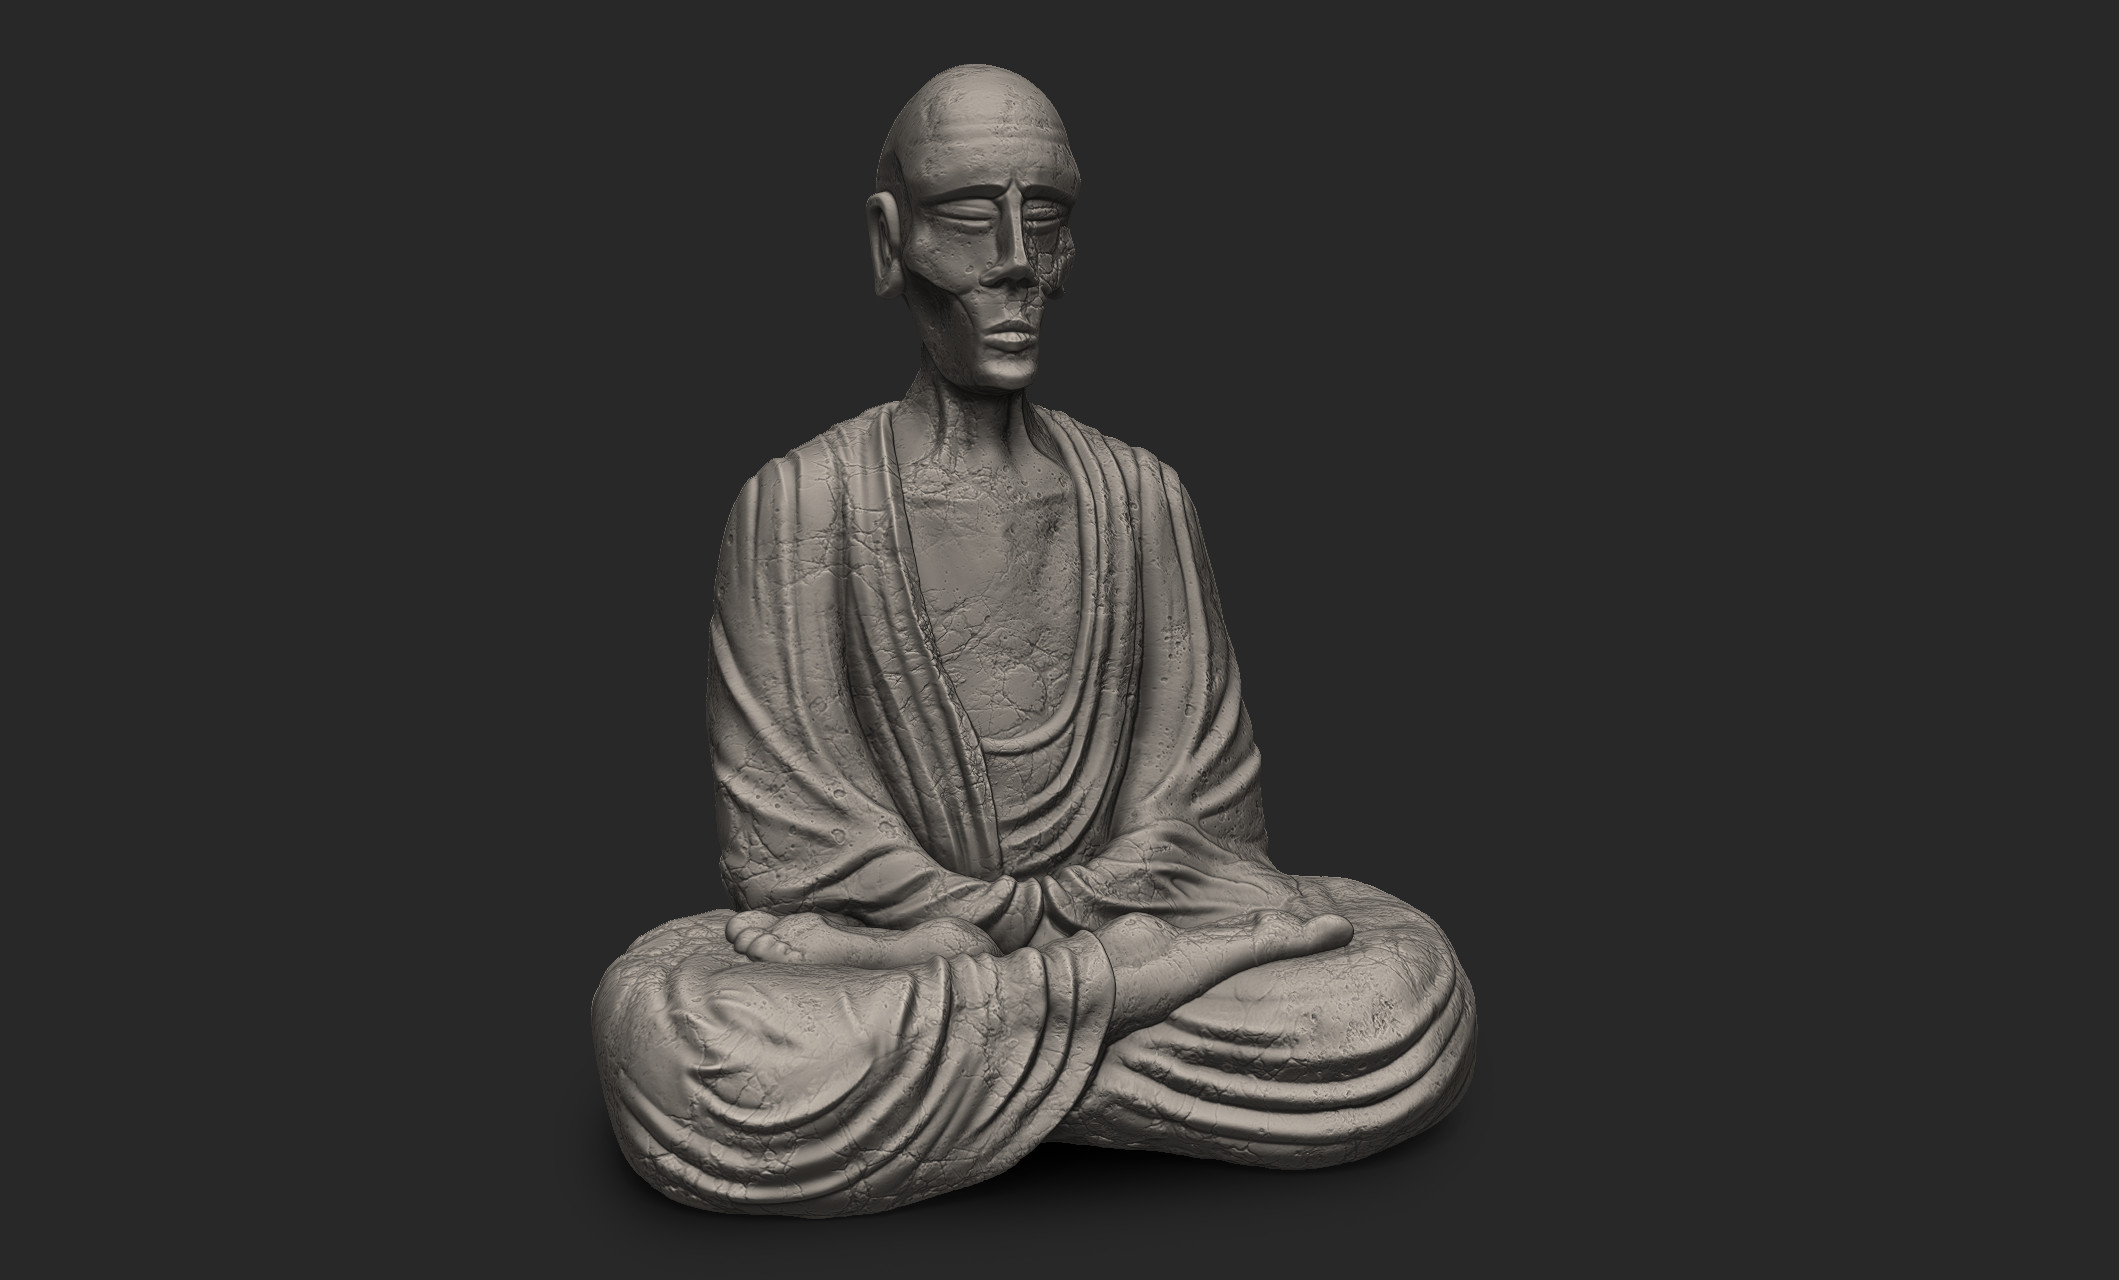 zBrush sculpt for the statue